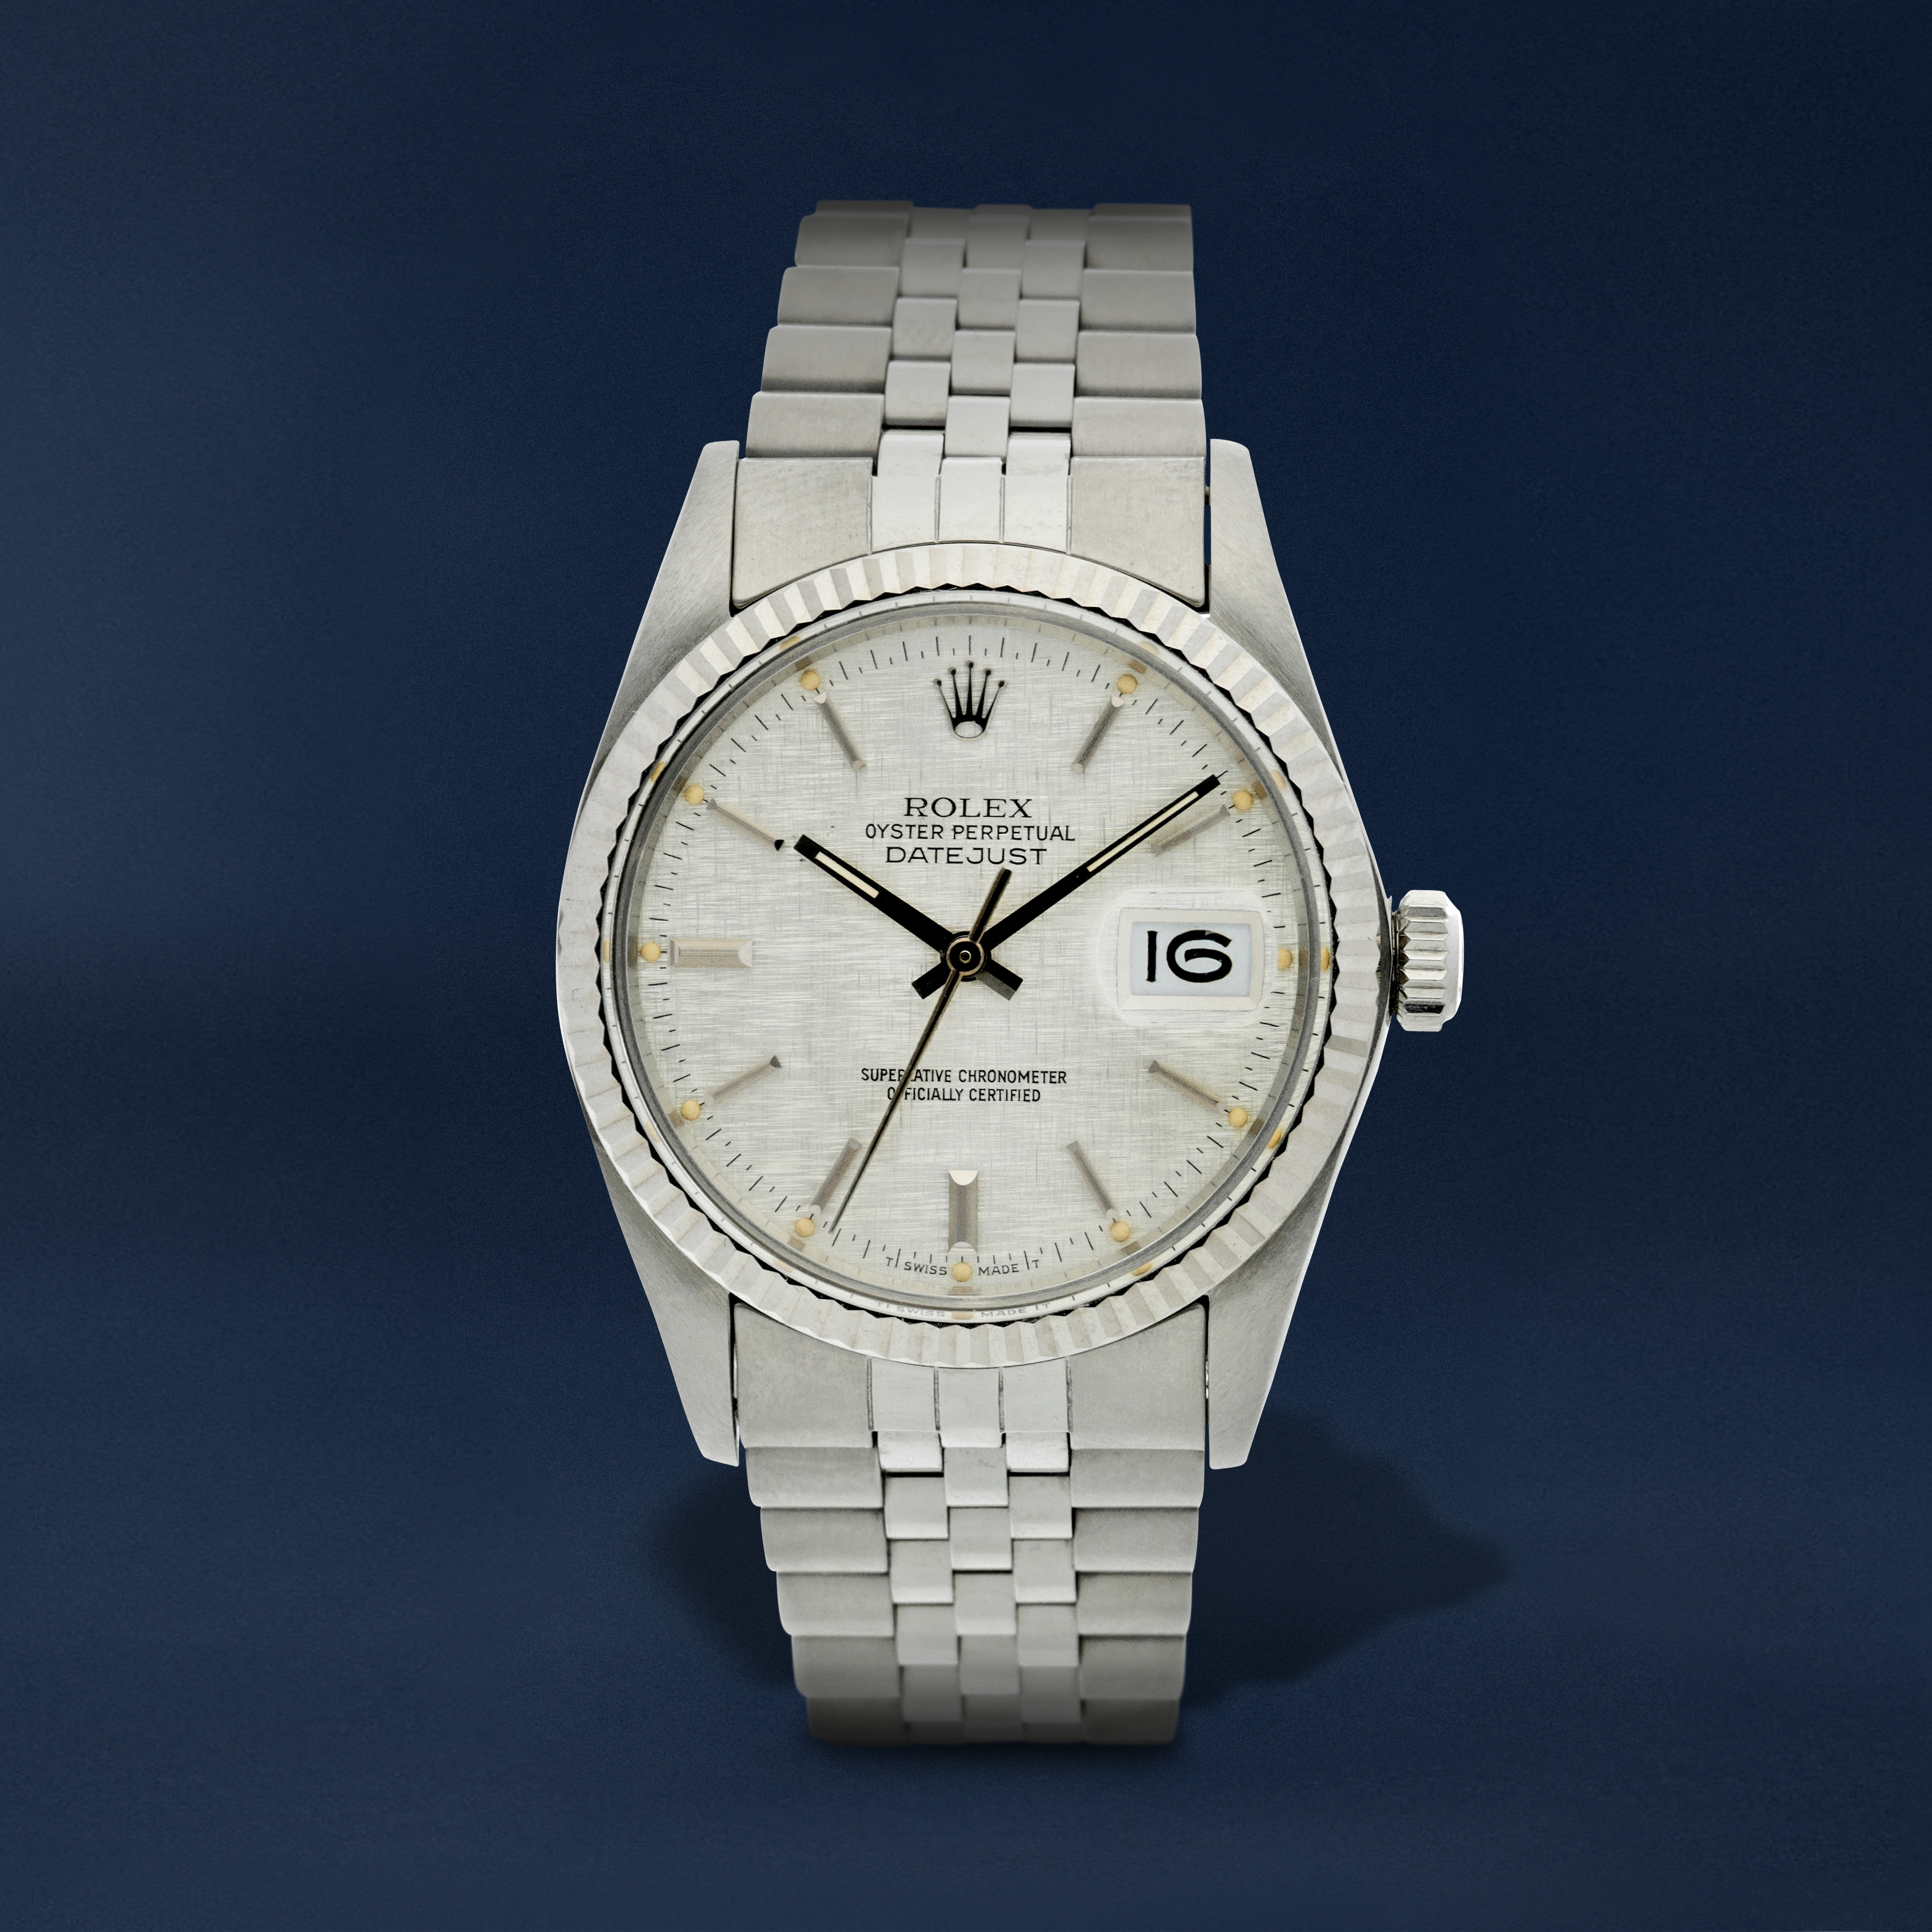 rolex-stainless-steel-perpetual-datejust-1968